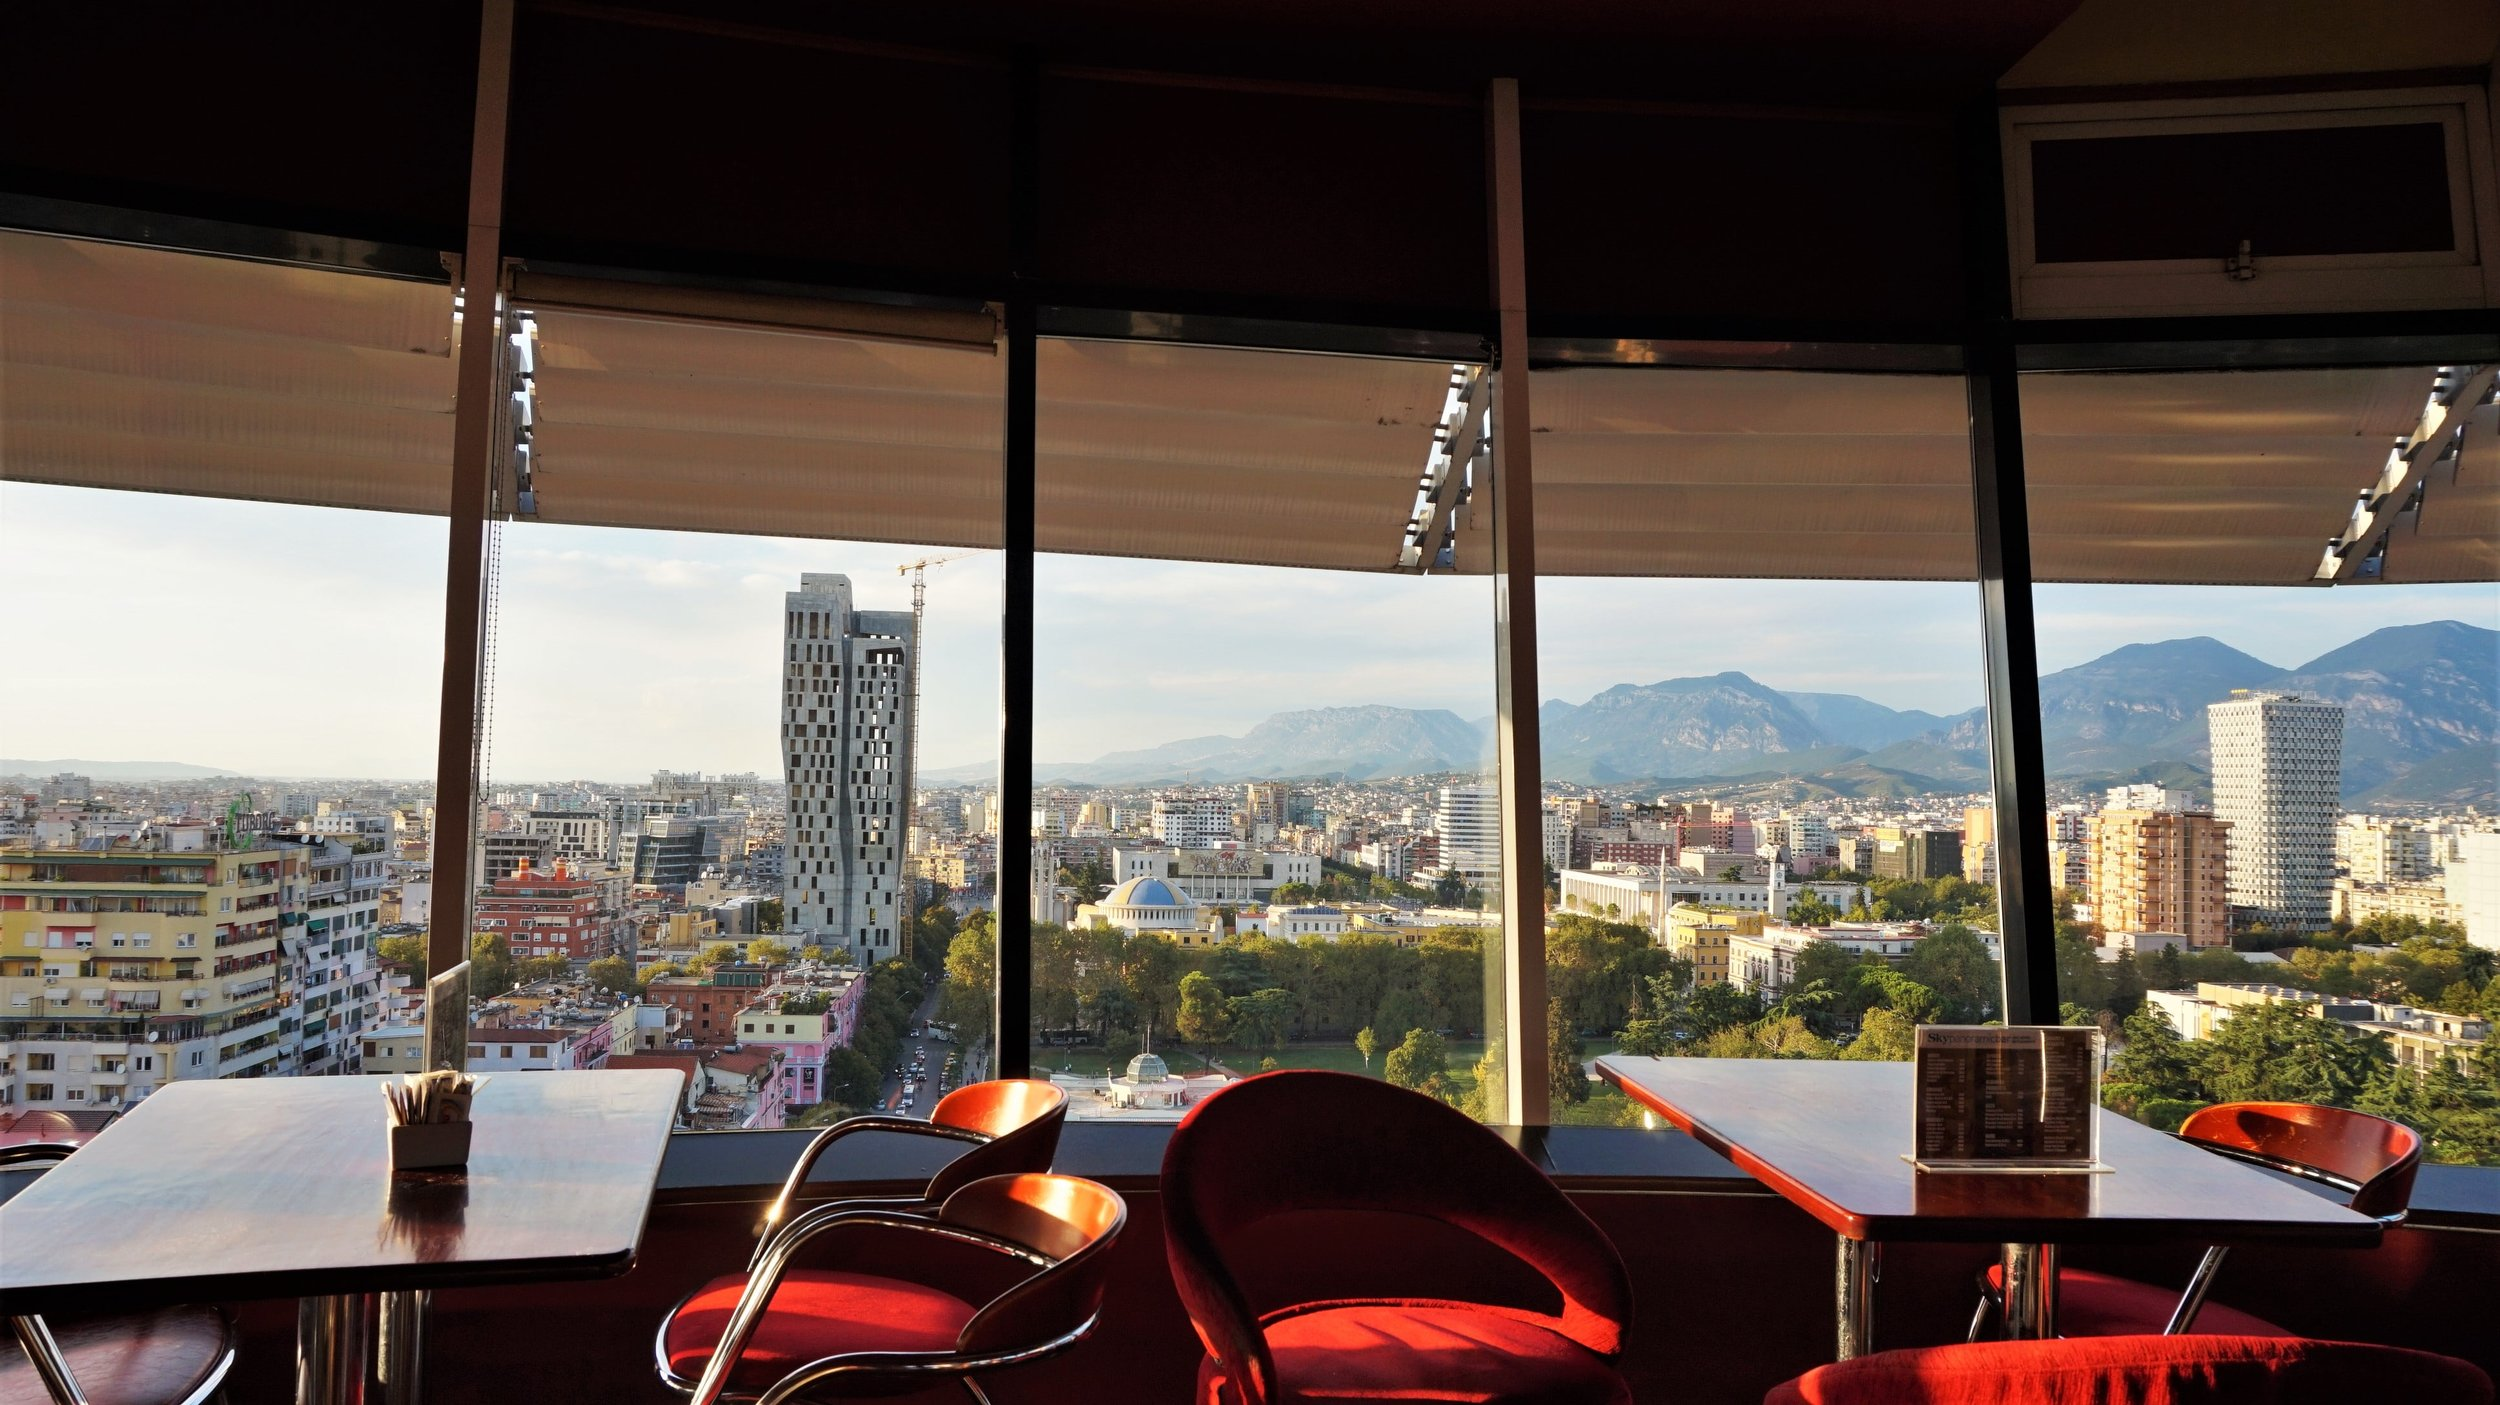 Sky tower things to do in tirana